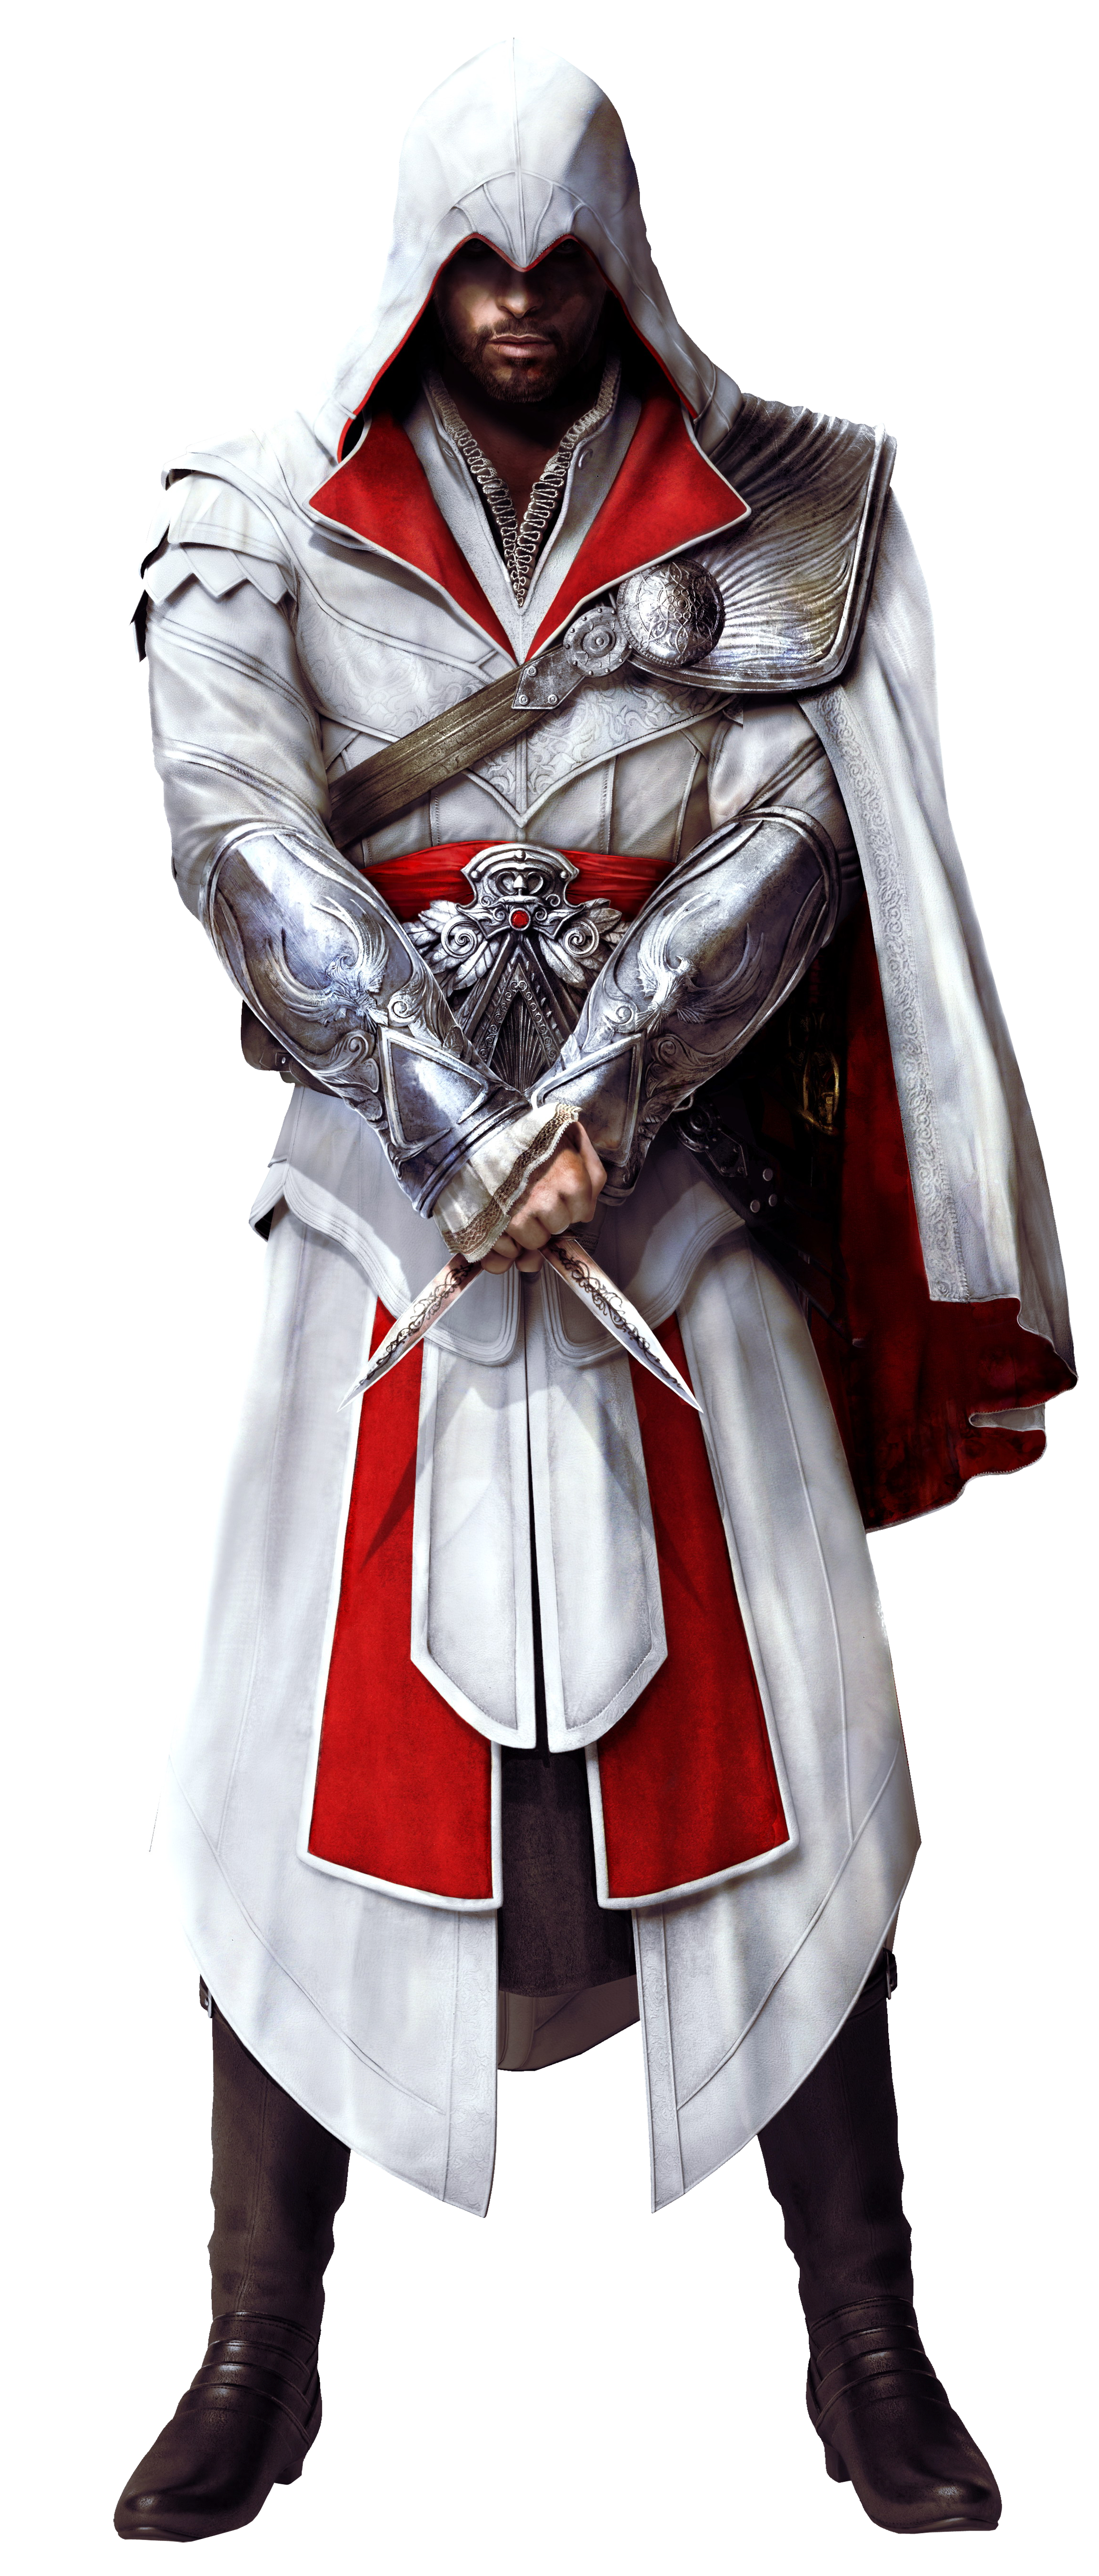 Image - ACB Ezio render.png - Assassin's Creed Wiki